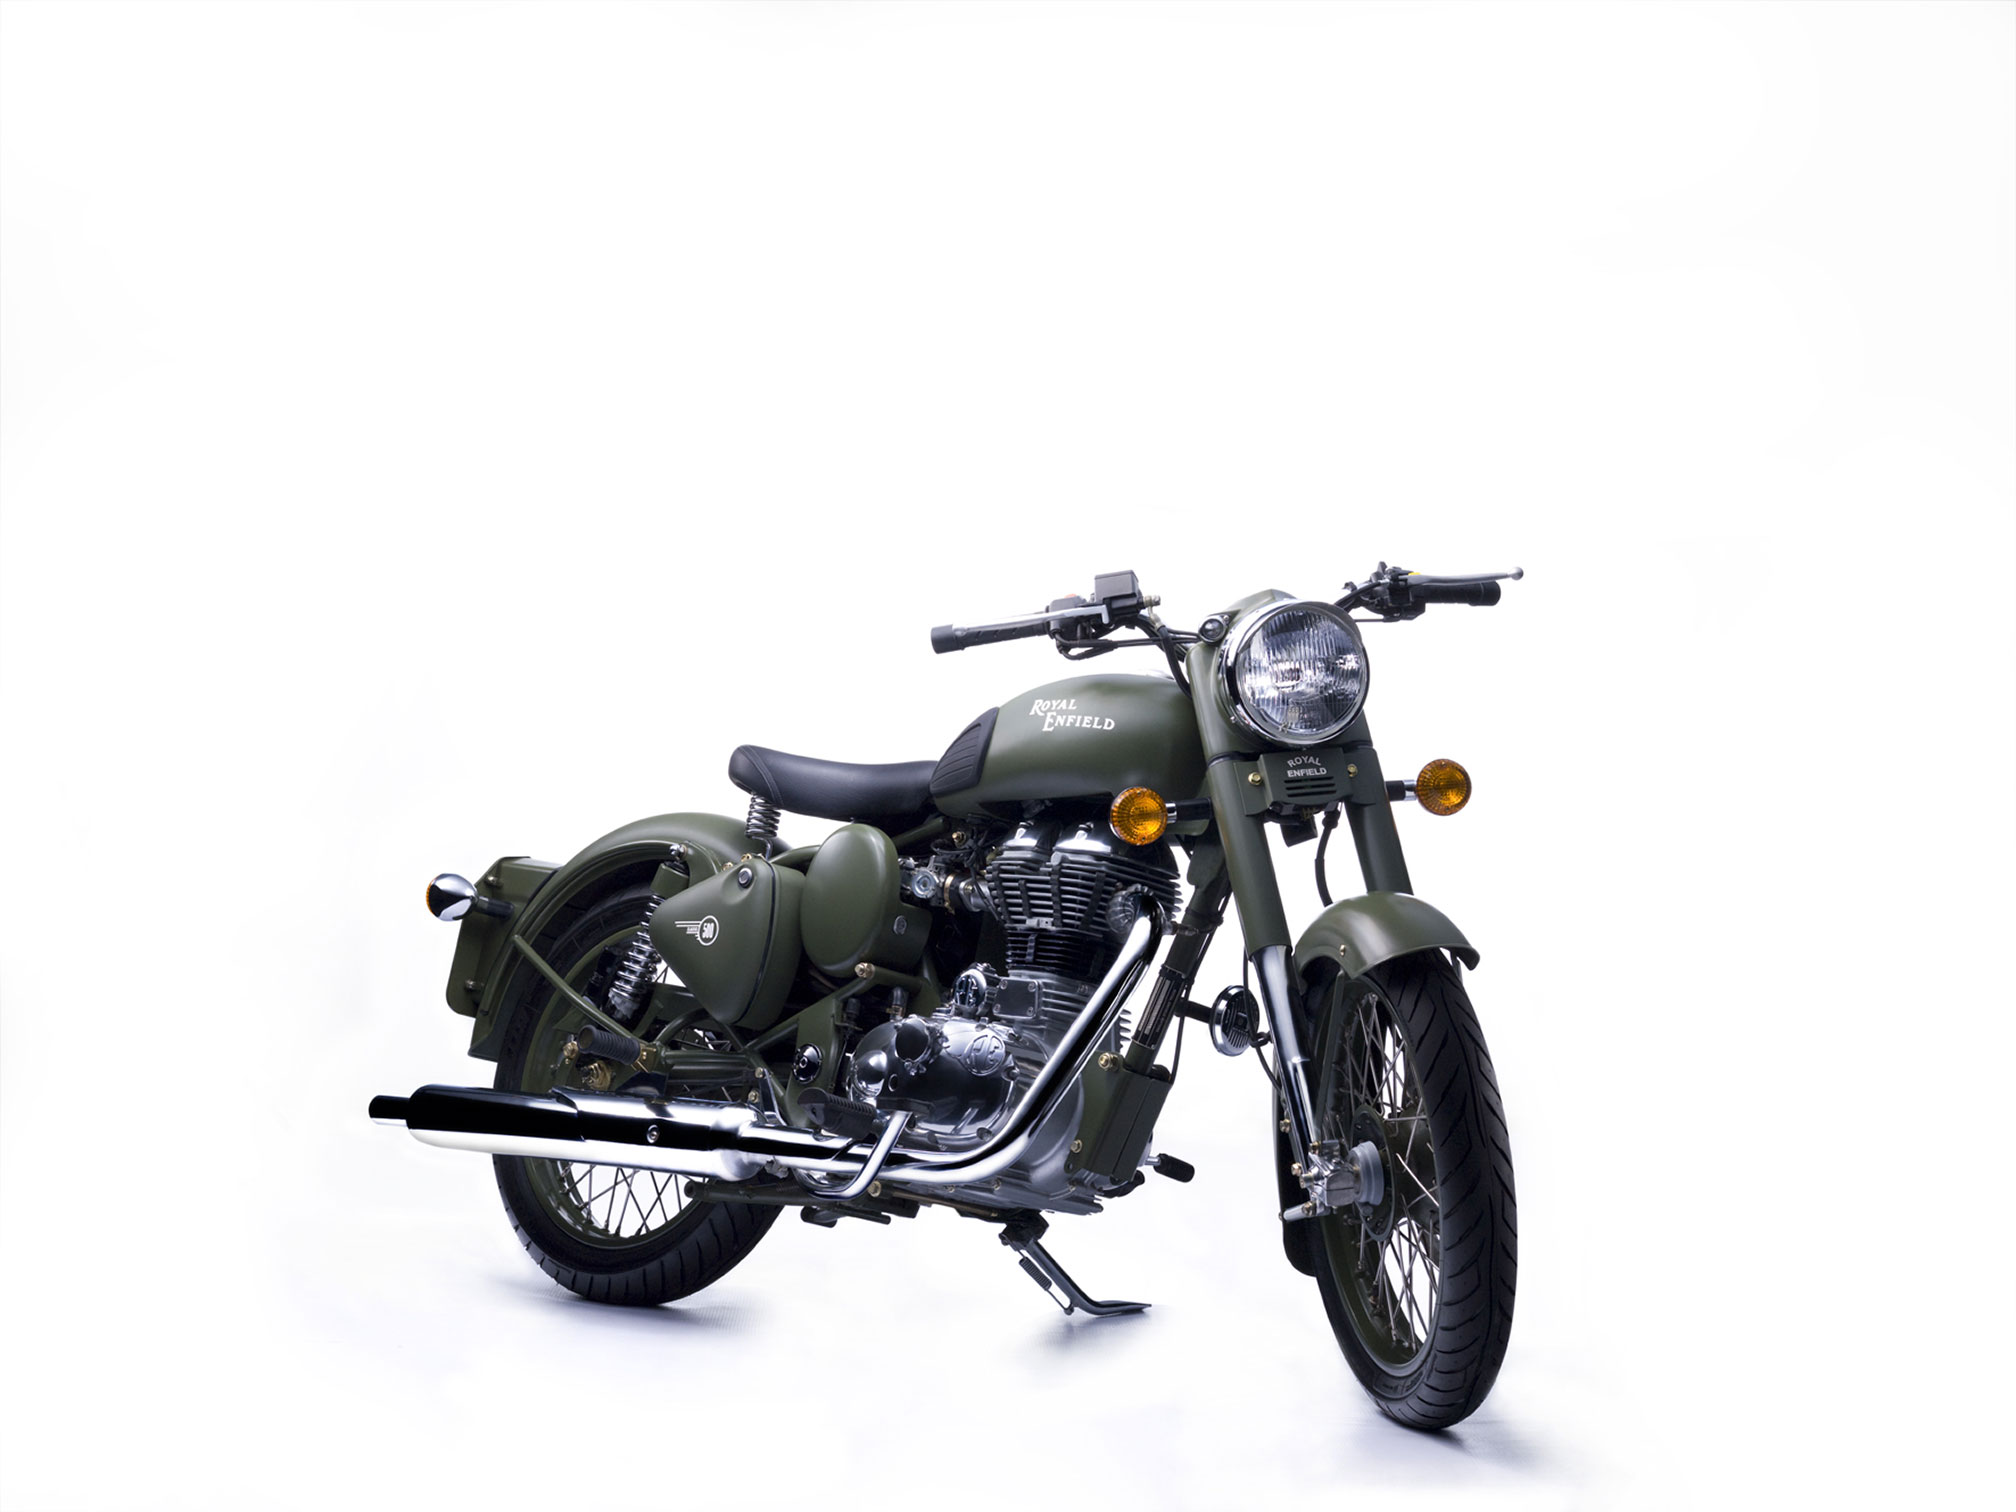 Royal Enfield Bullet 350 Army 1989 images #122473